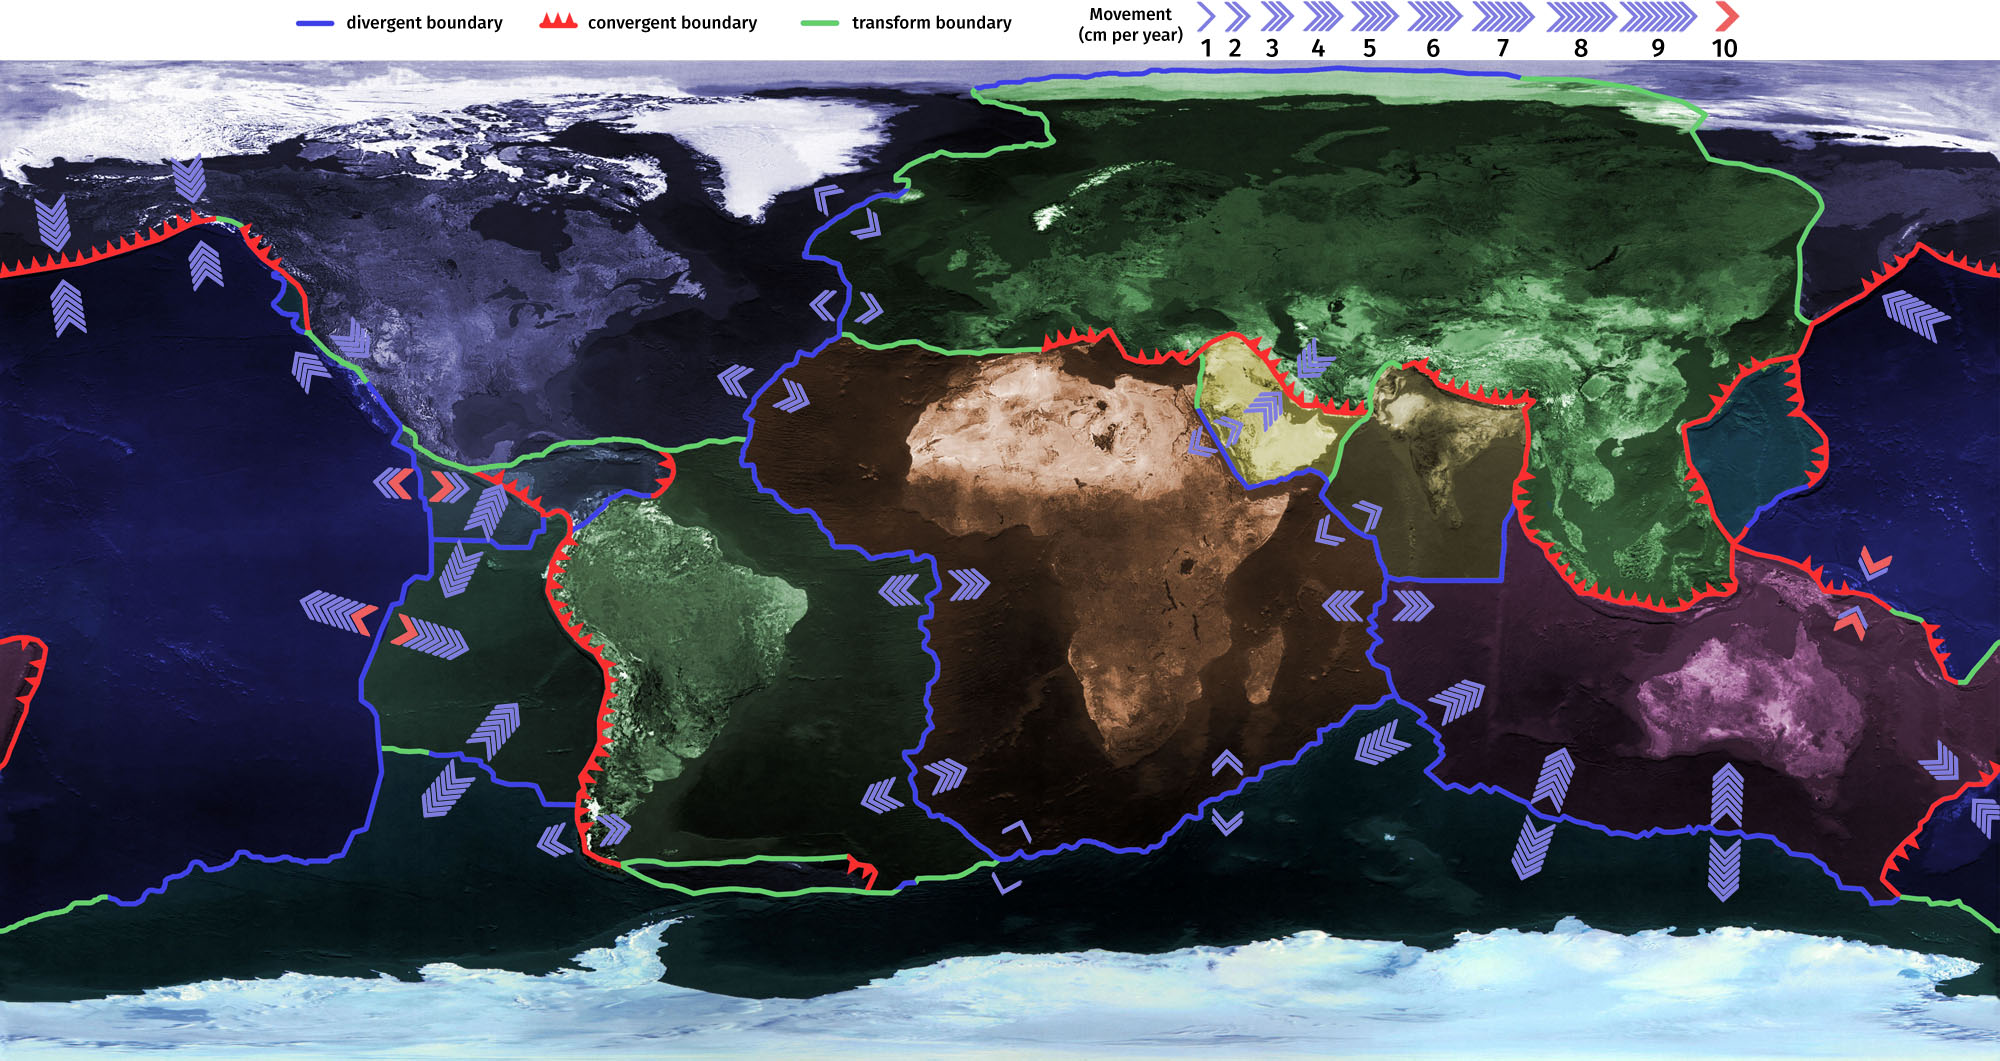 en66-how-plate-tectonics-is-connected-with-life-on-the-planet_10